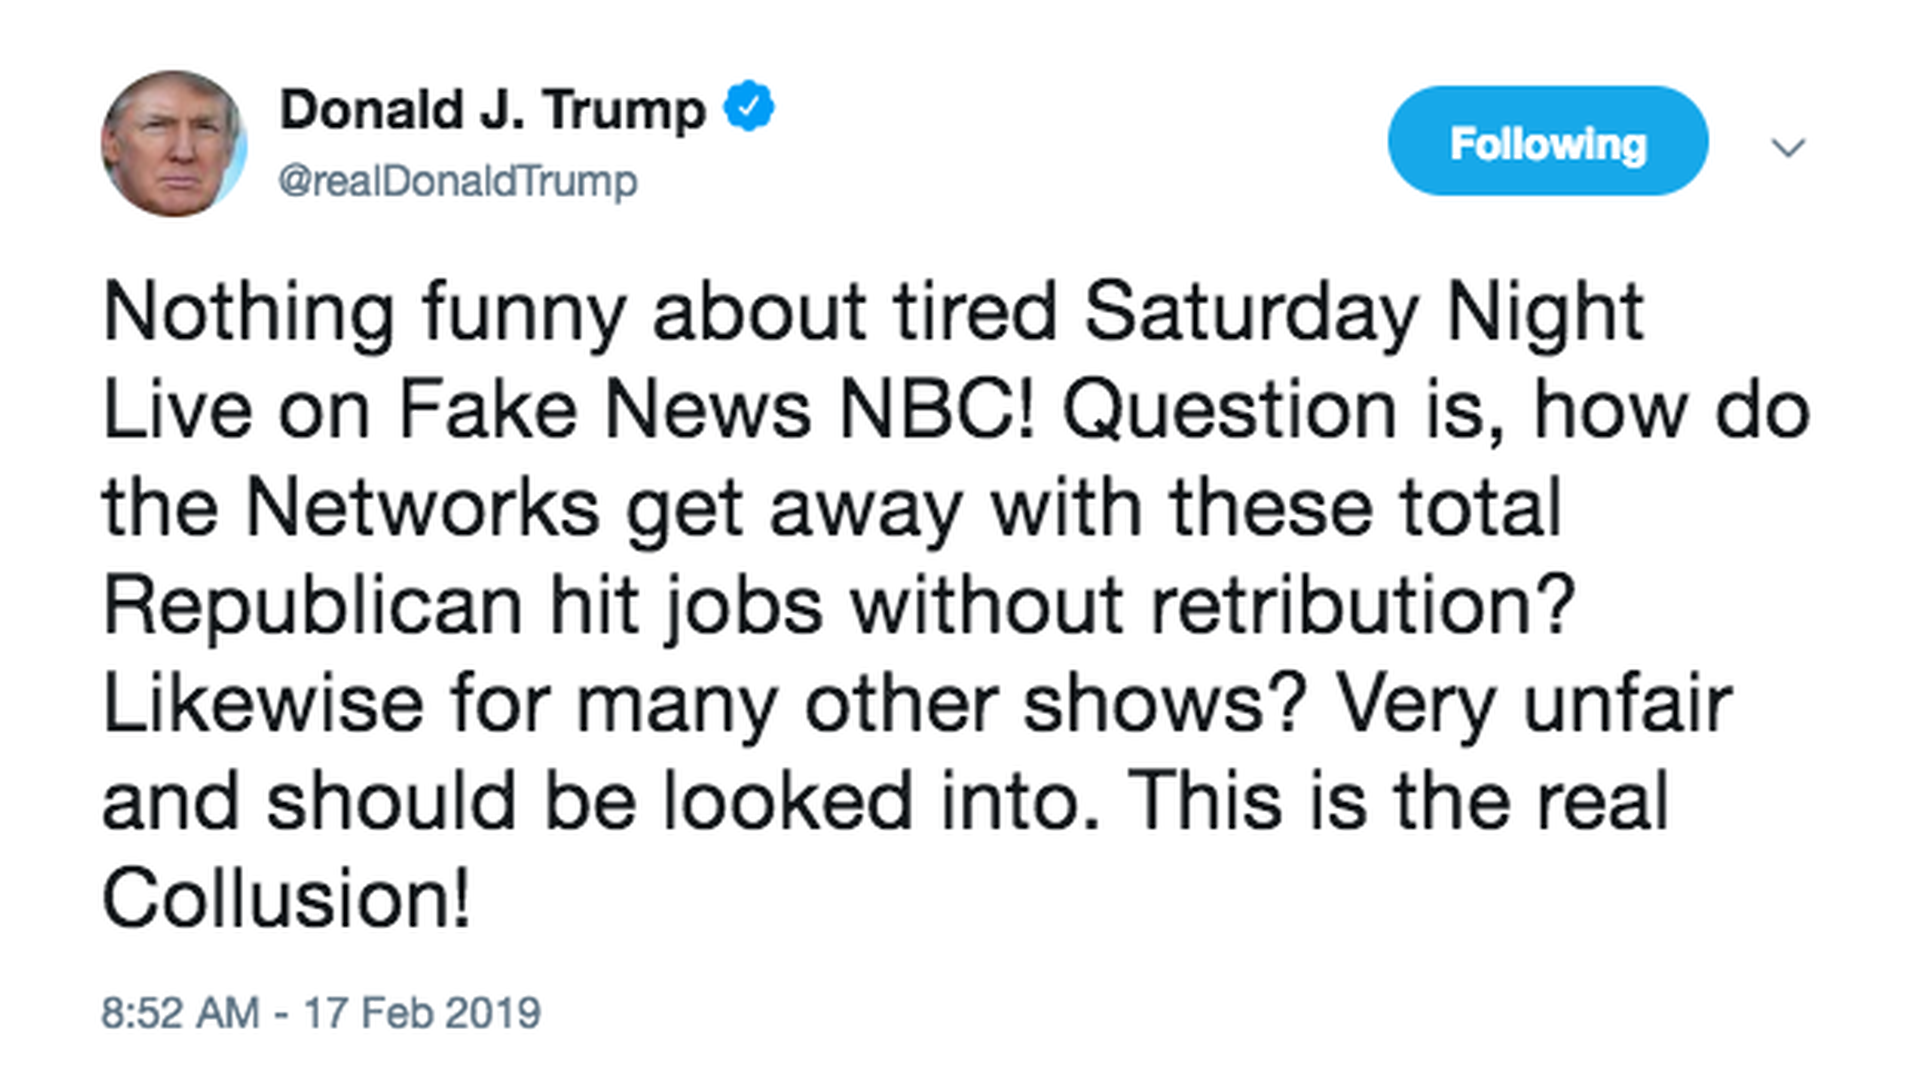 """""""This is the real Collusion!"""": Trump asks how SNL can air """"without retribution"""""""